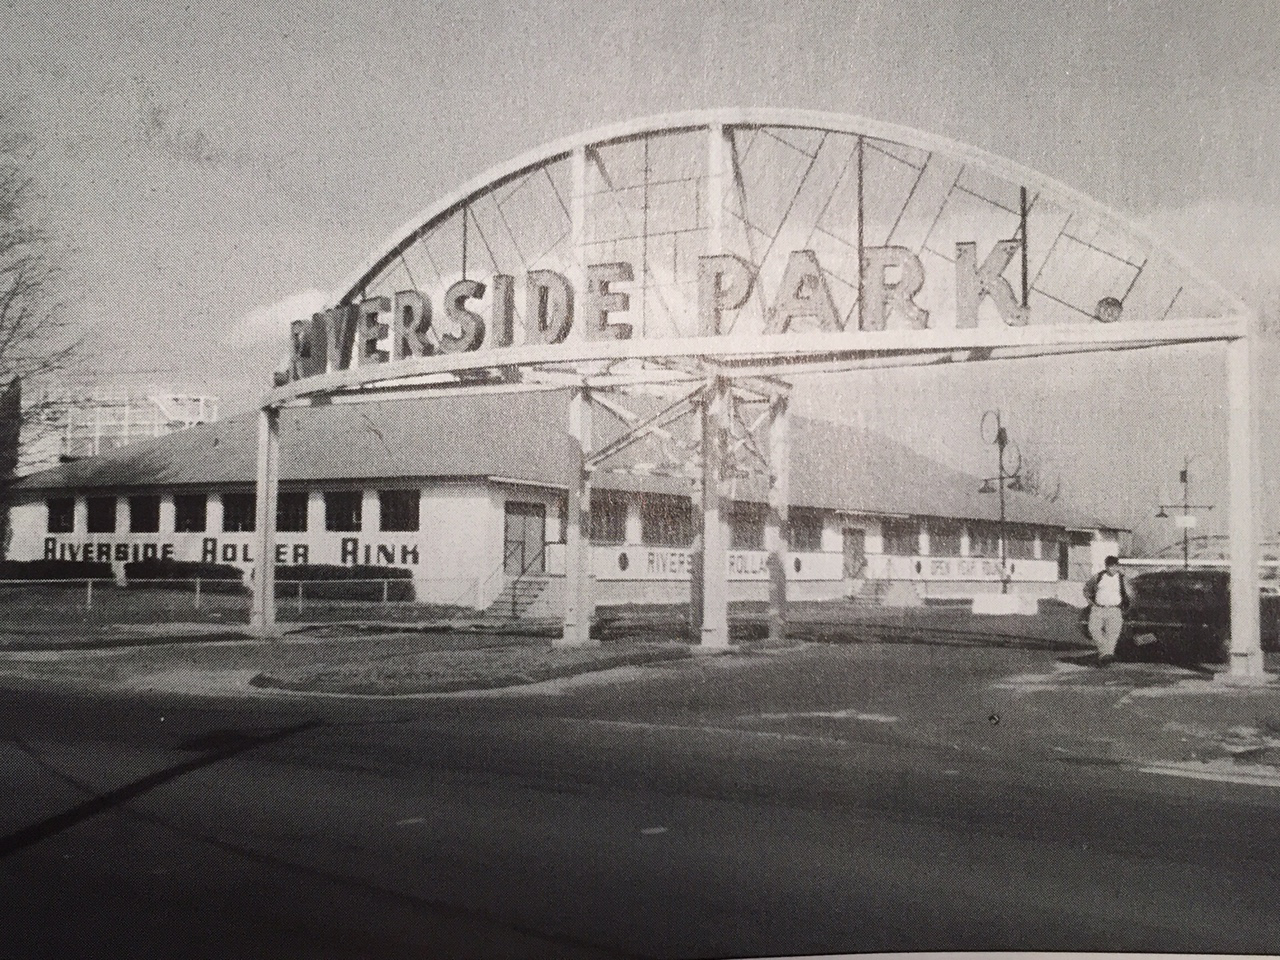 Archive image of Riverside Park in Agawam, MA